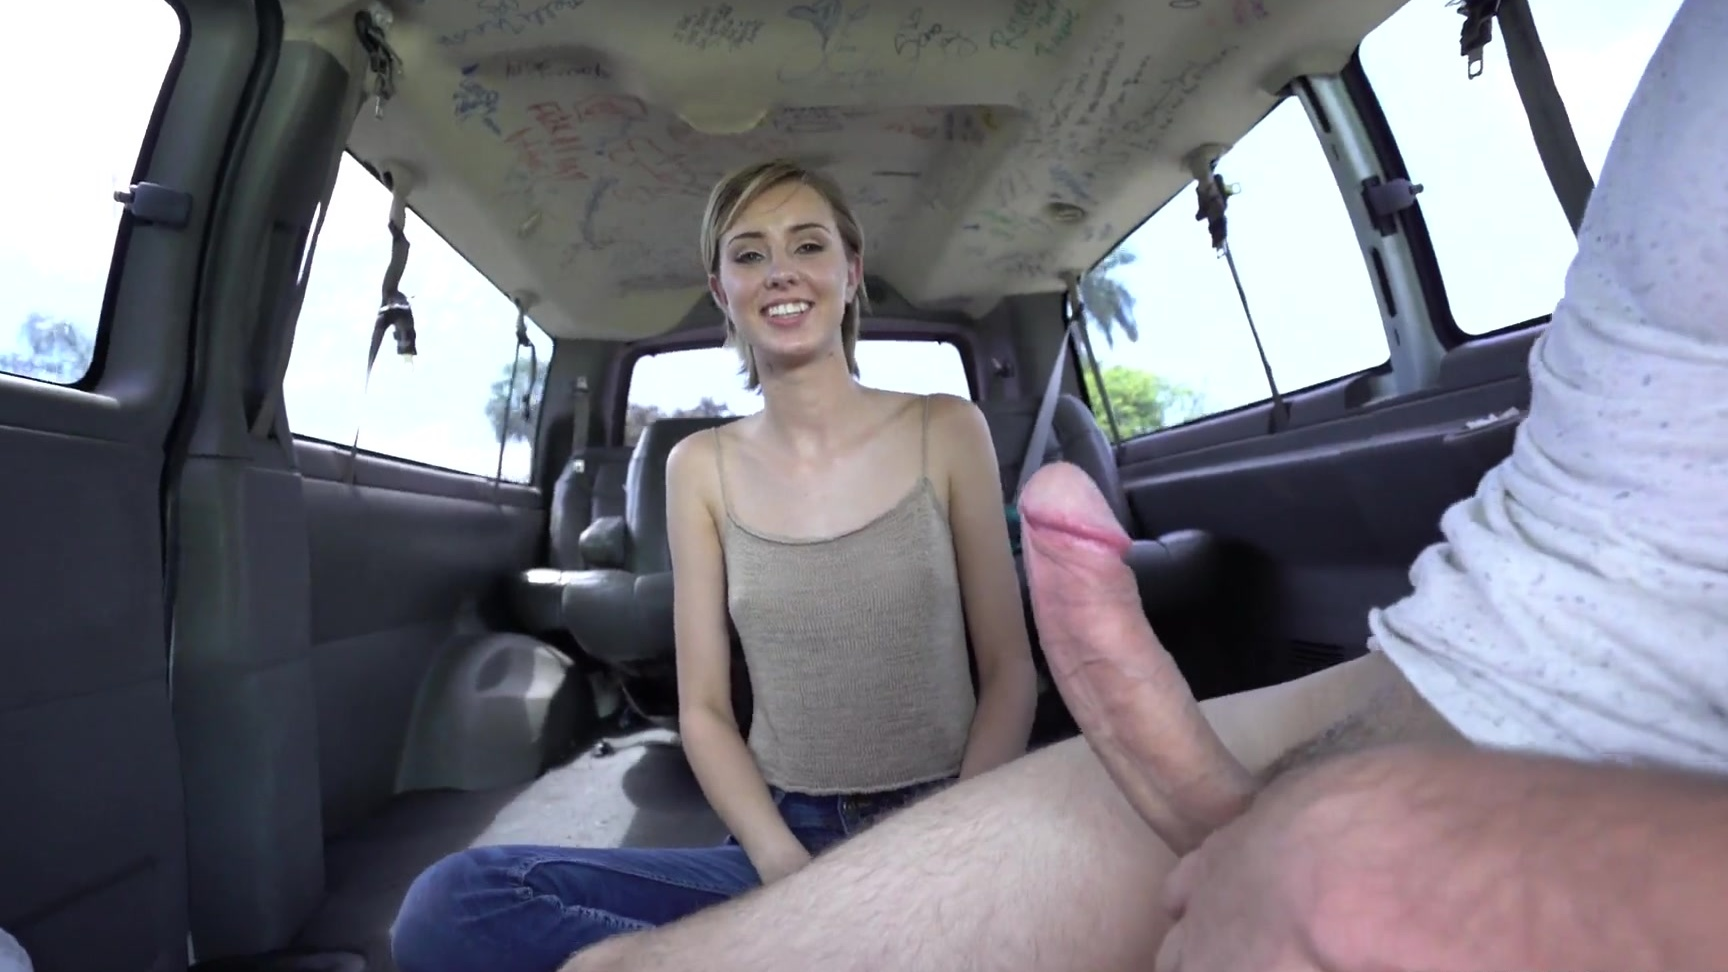 haley reed sucking & riding a big meat in the backseat of a cab